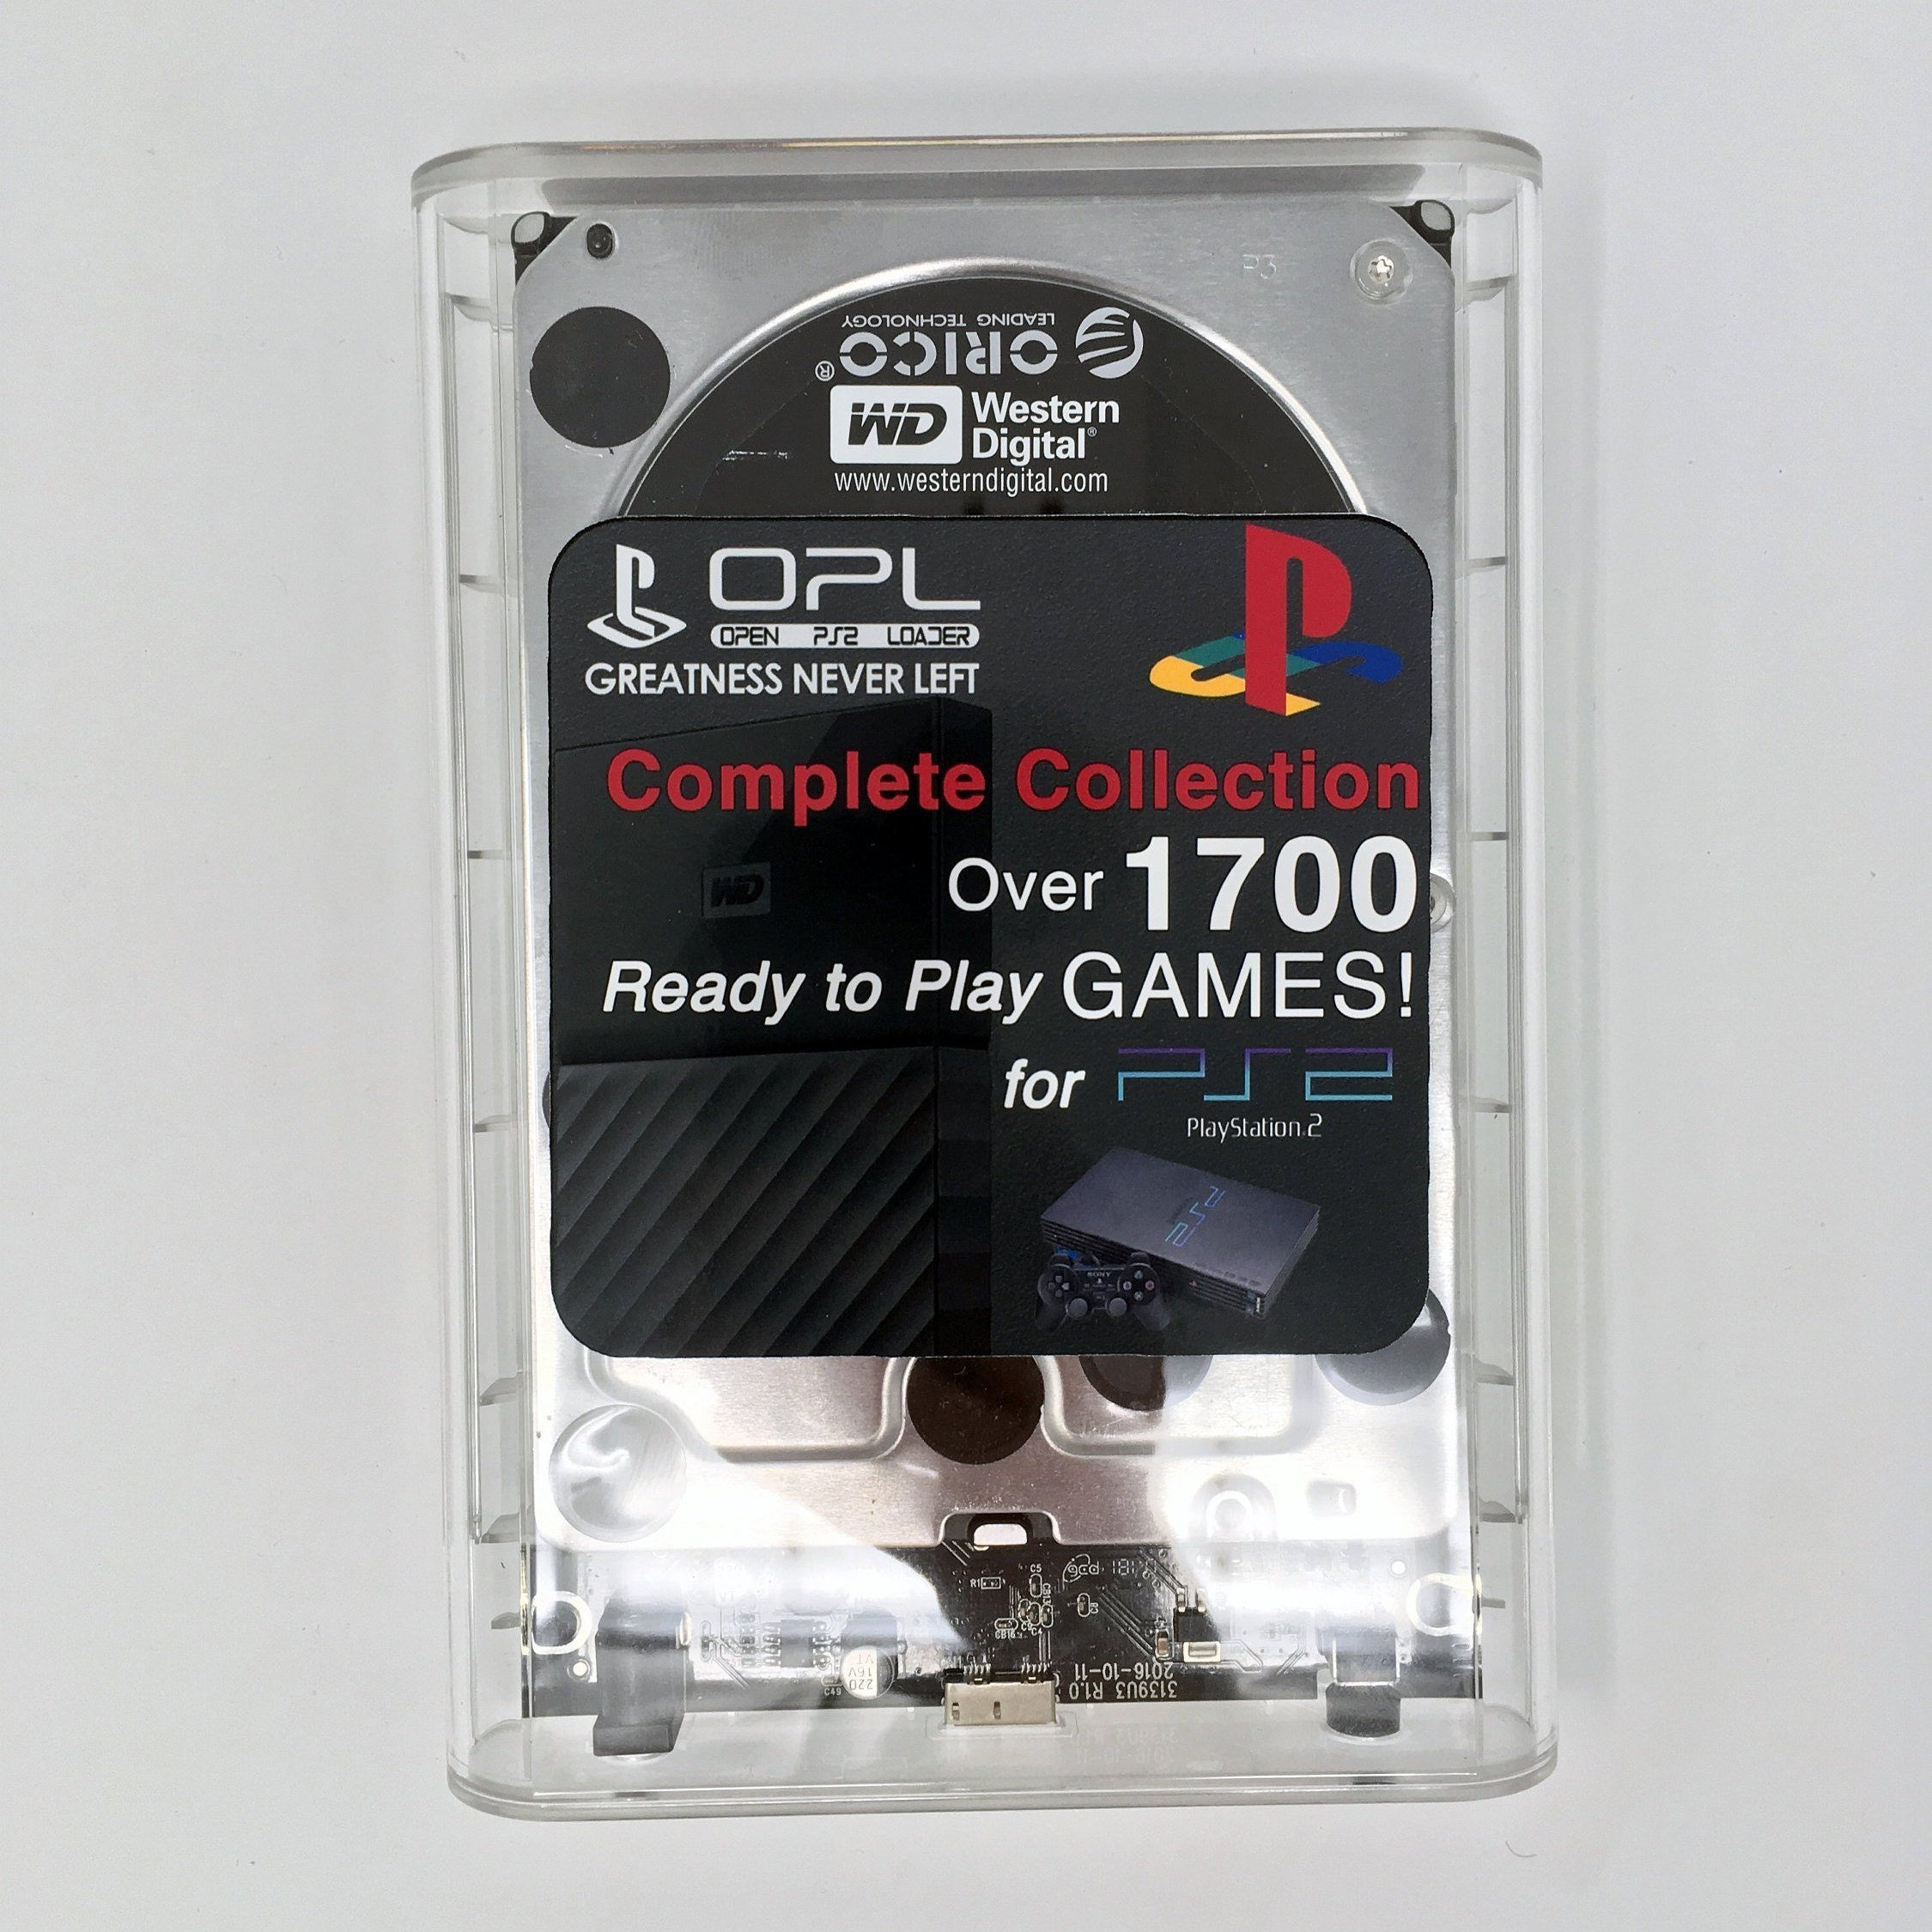 PS1 Complete Collection Hard Drive for PopStarter OPL PS2 - Free McBoot  FMCB Open Ps2 Loader VCD Usb PlayStation Psx